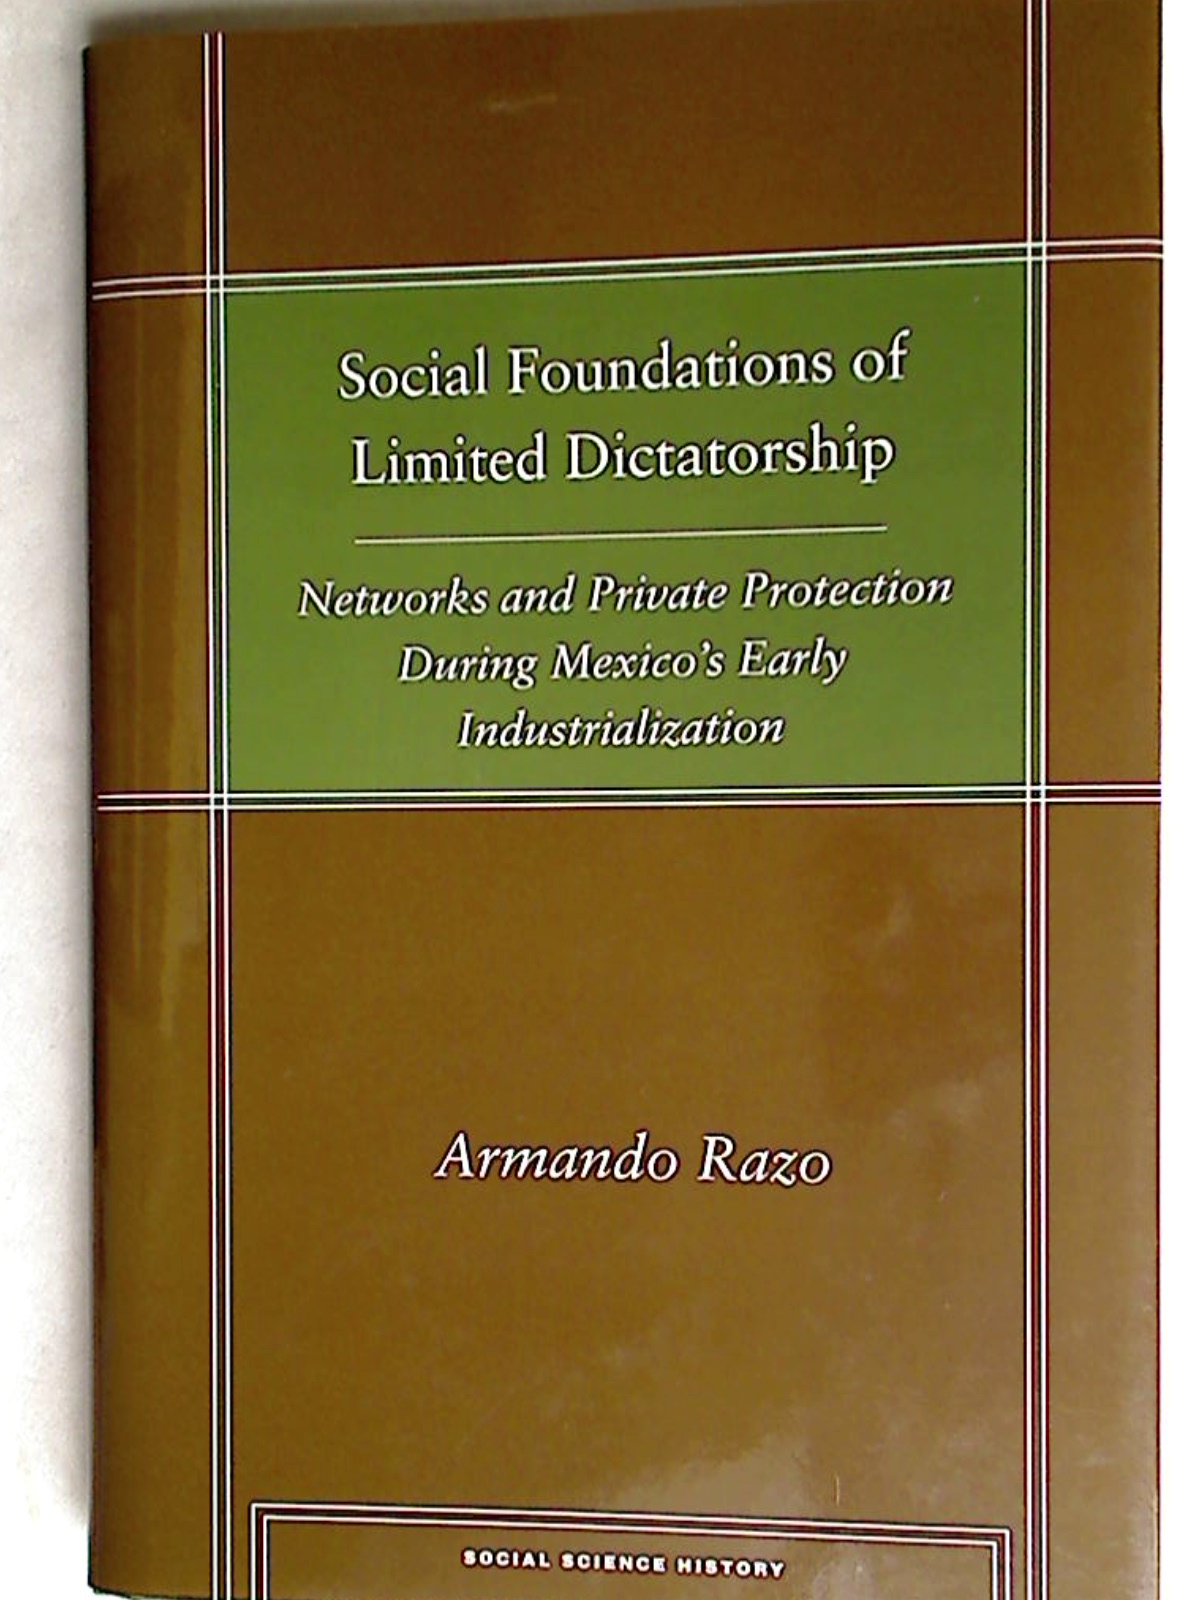 Social Foundations of Limited Dictatorship: Networks and Private Protection During Mexico's Early Industrialization.